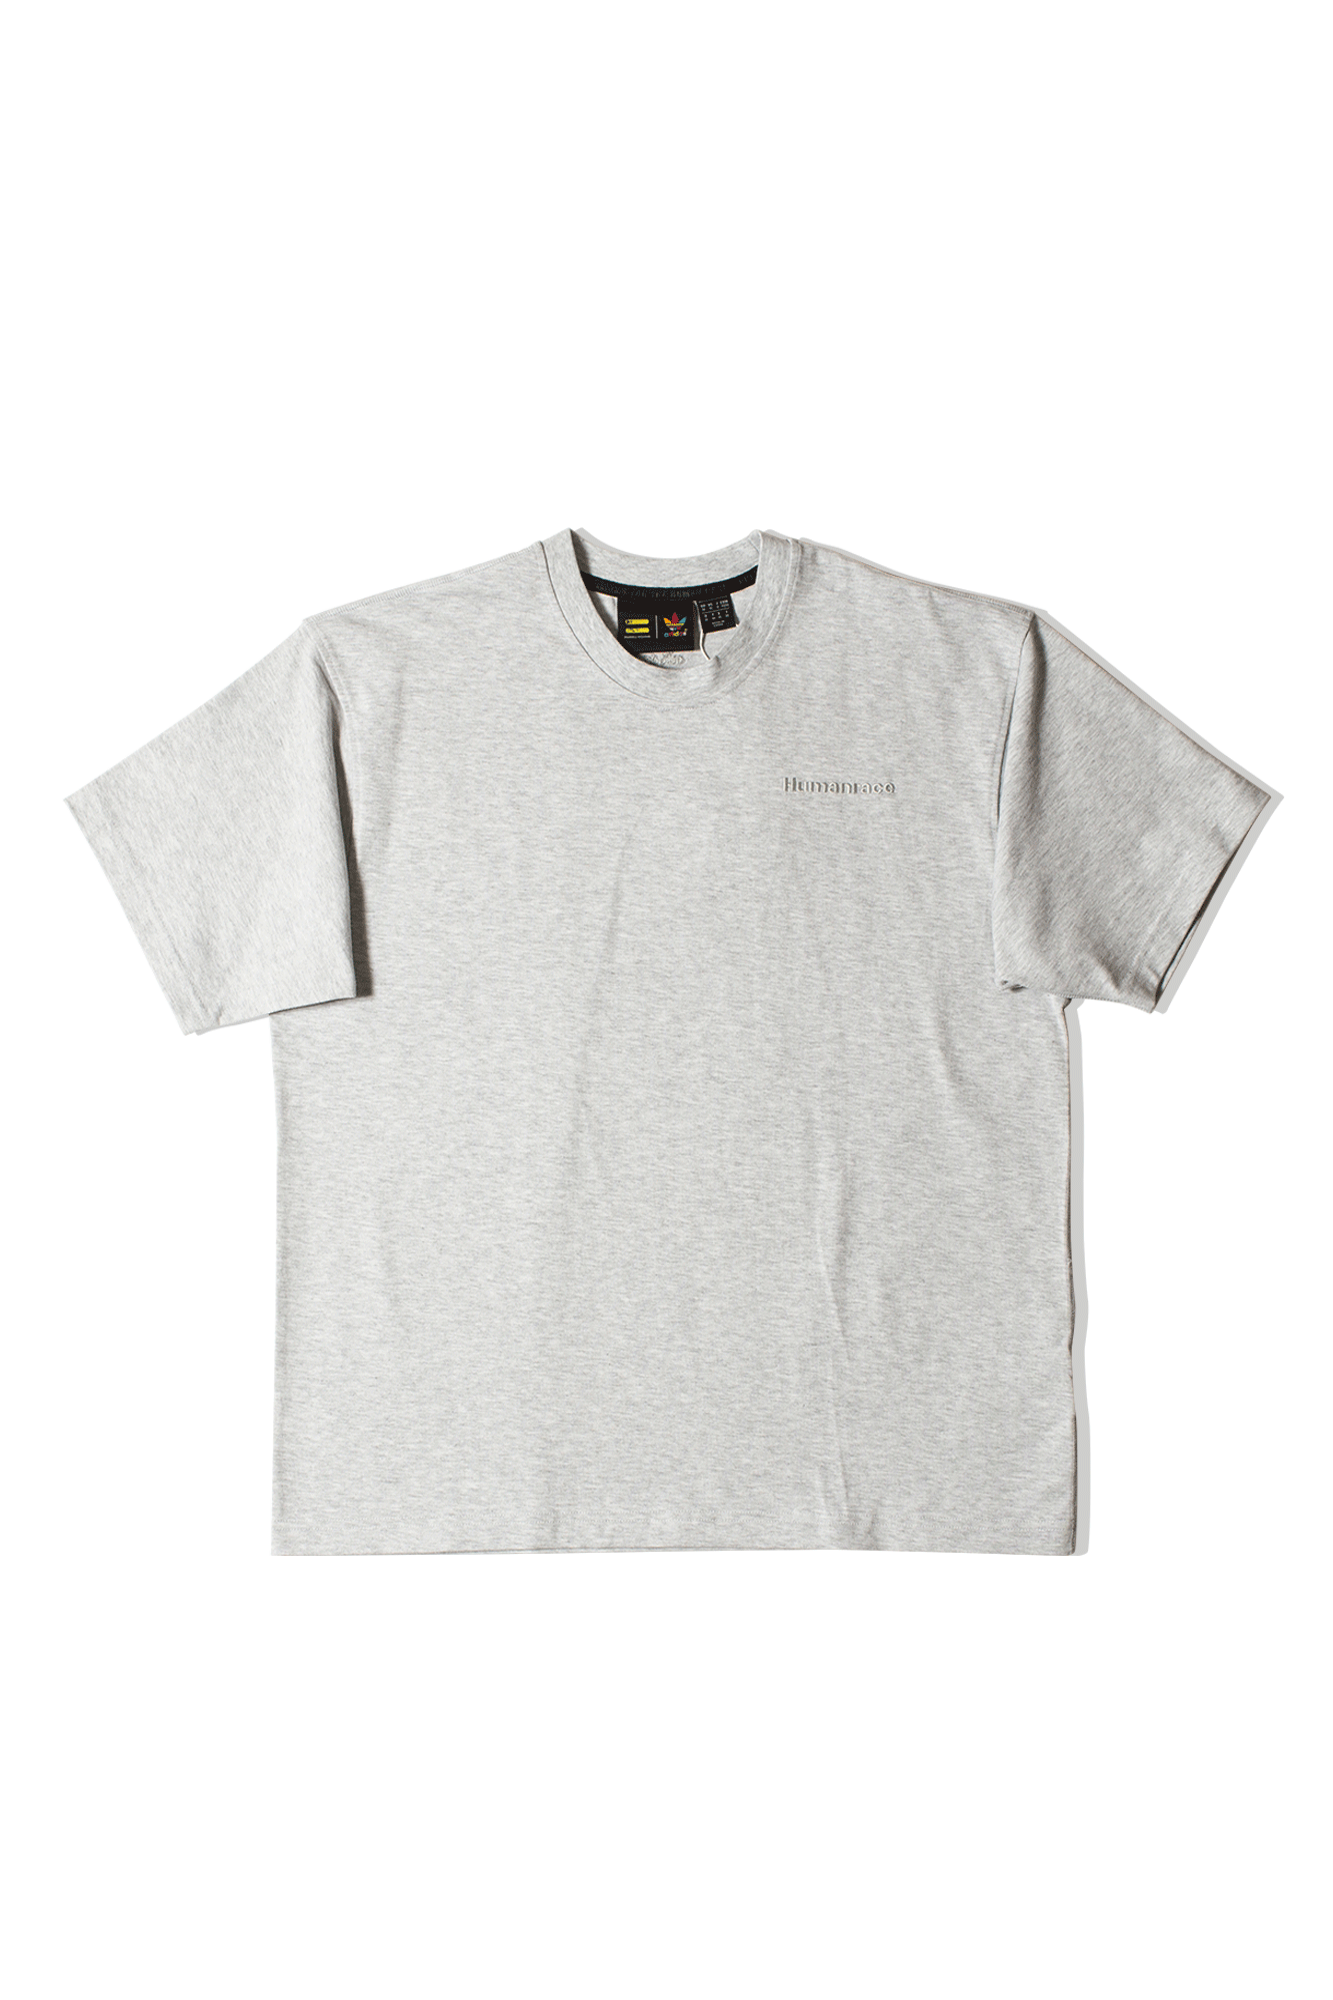 PW Basics Shirt